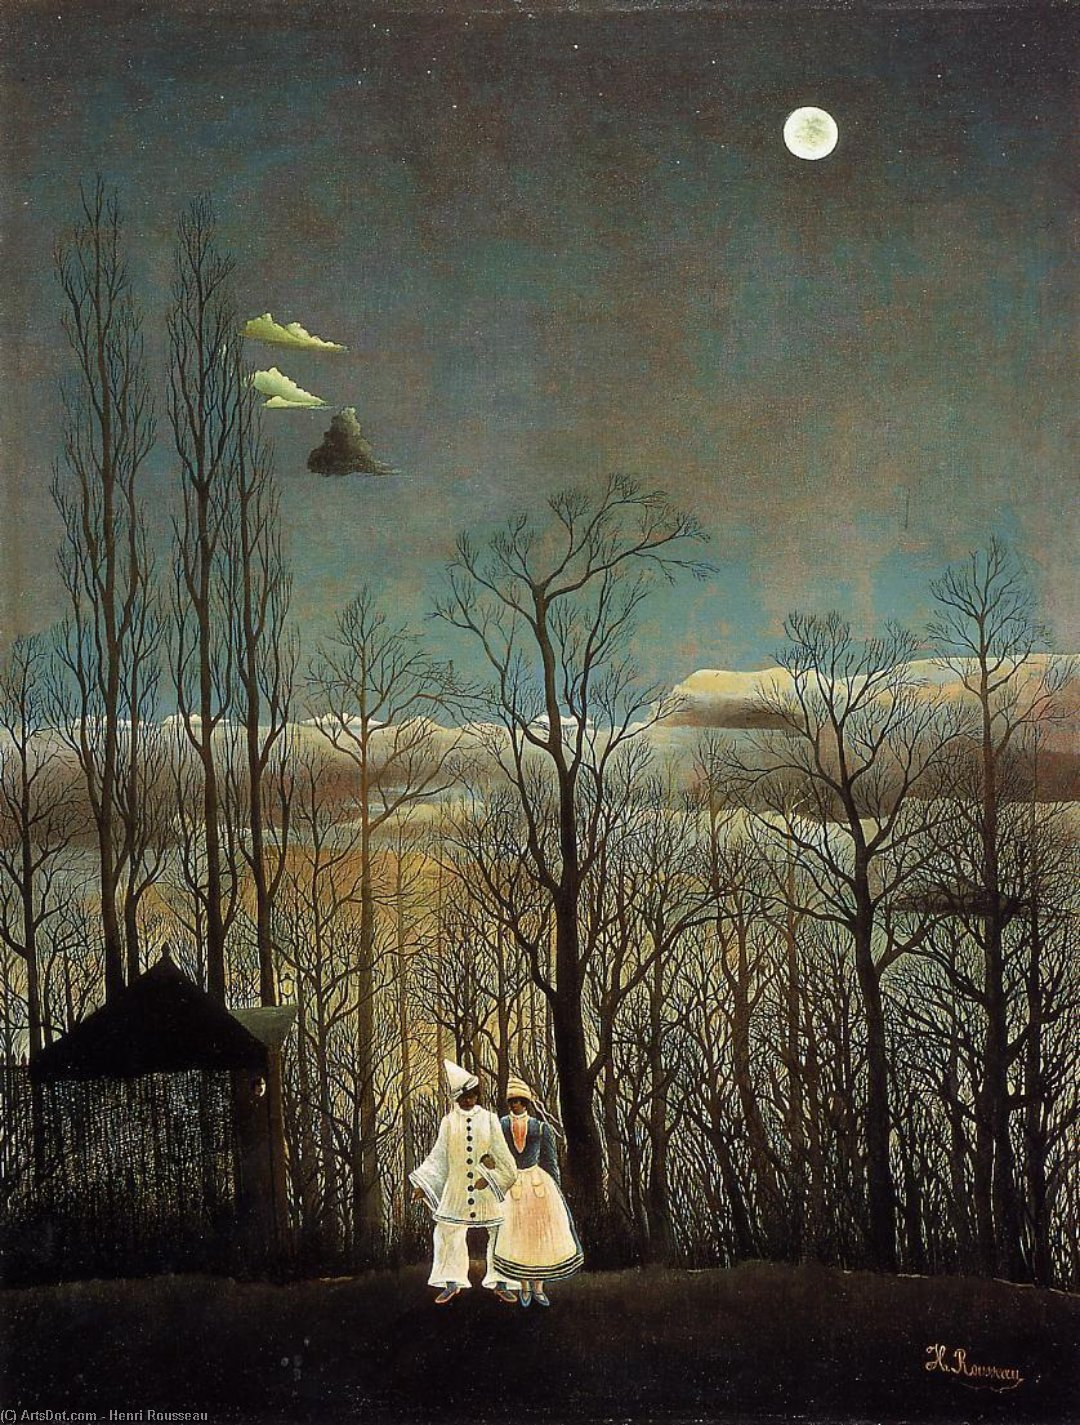 Wikioo.org - The Encyclopedia of Fine Arts - Painting, Artwork by Henri Emilien Rousseau - A Carnival Evening